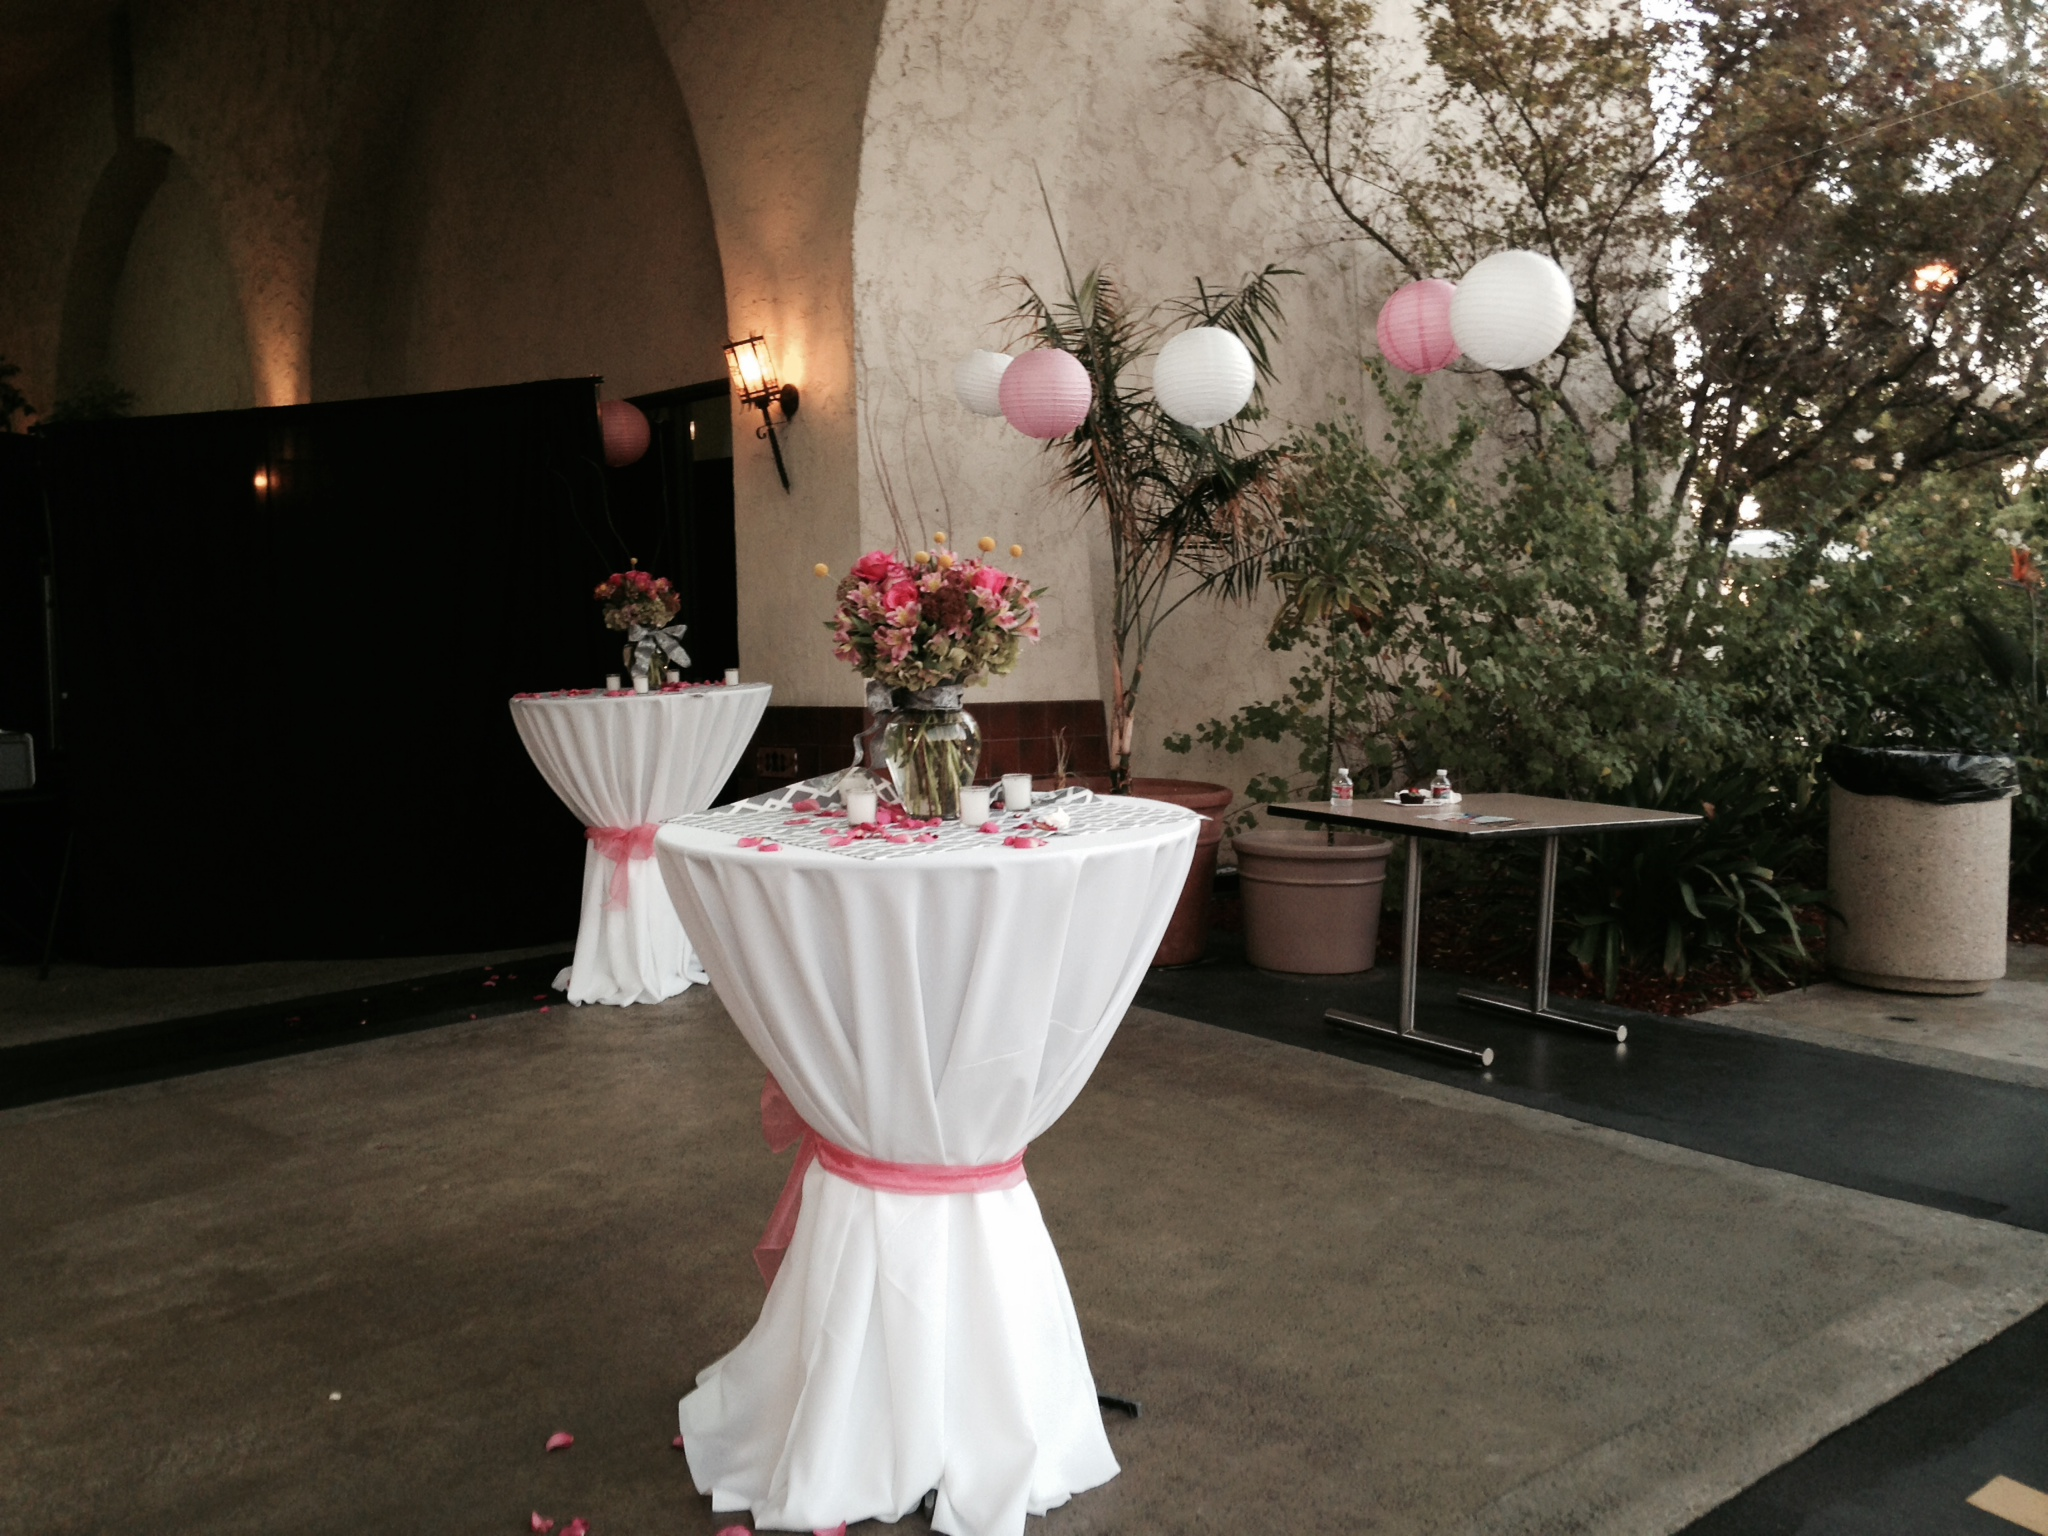 Outdoor area with two tables that are covered with white tablecloths and pink ribbons. a bouquet of flowers placed on top